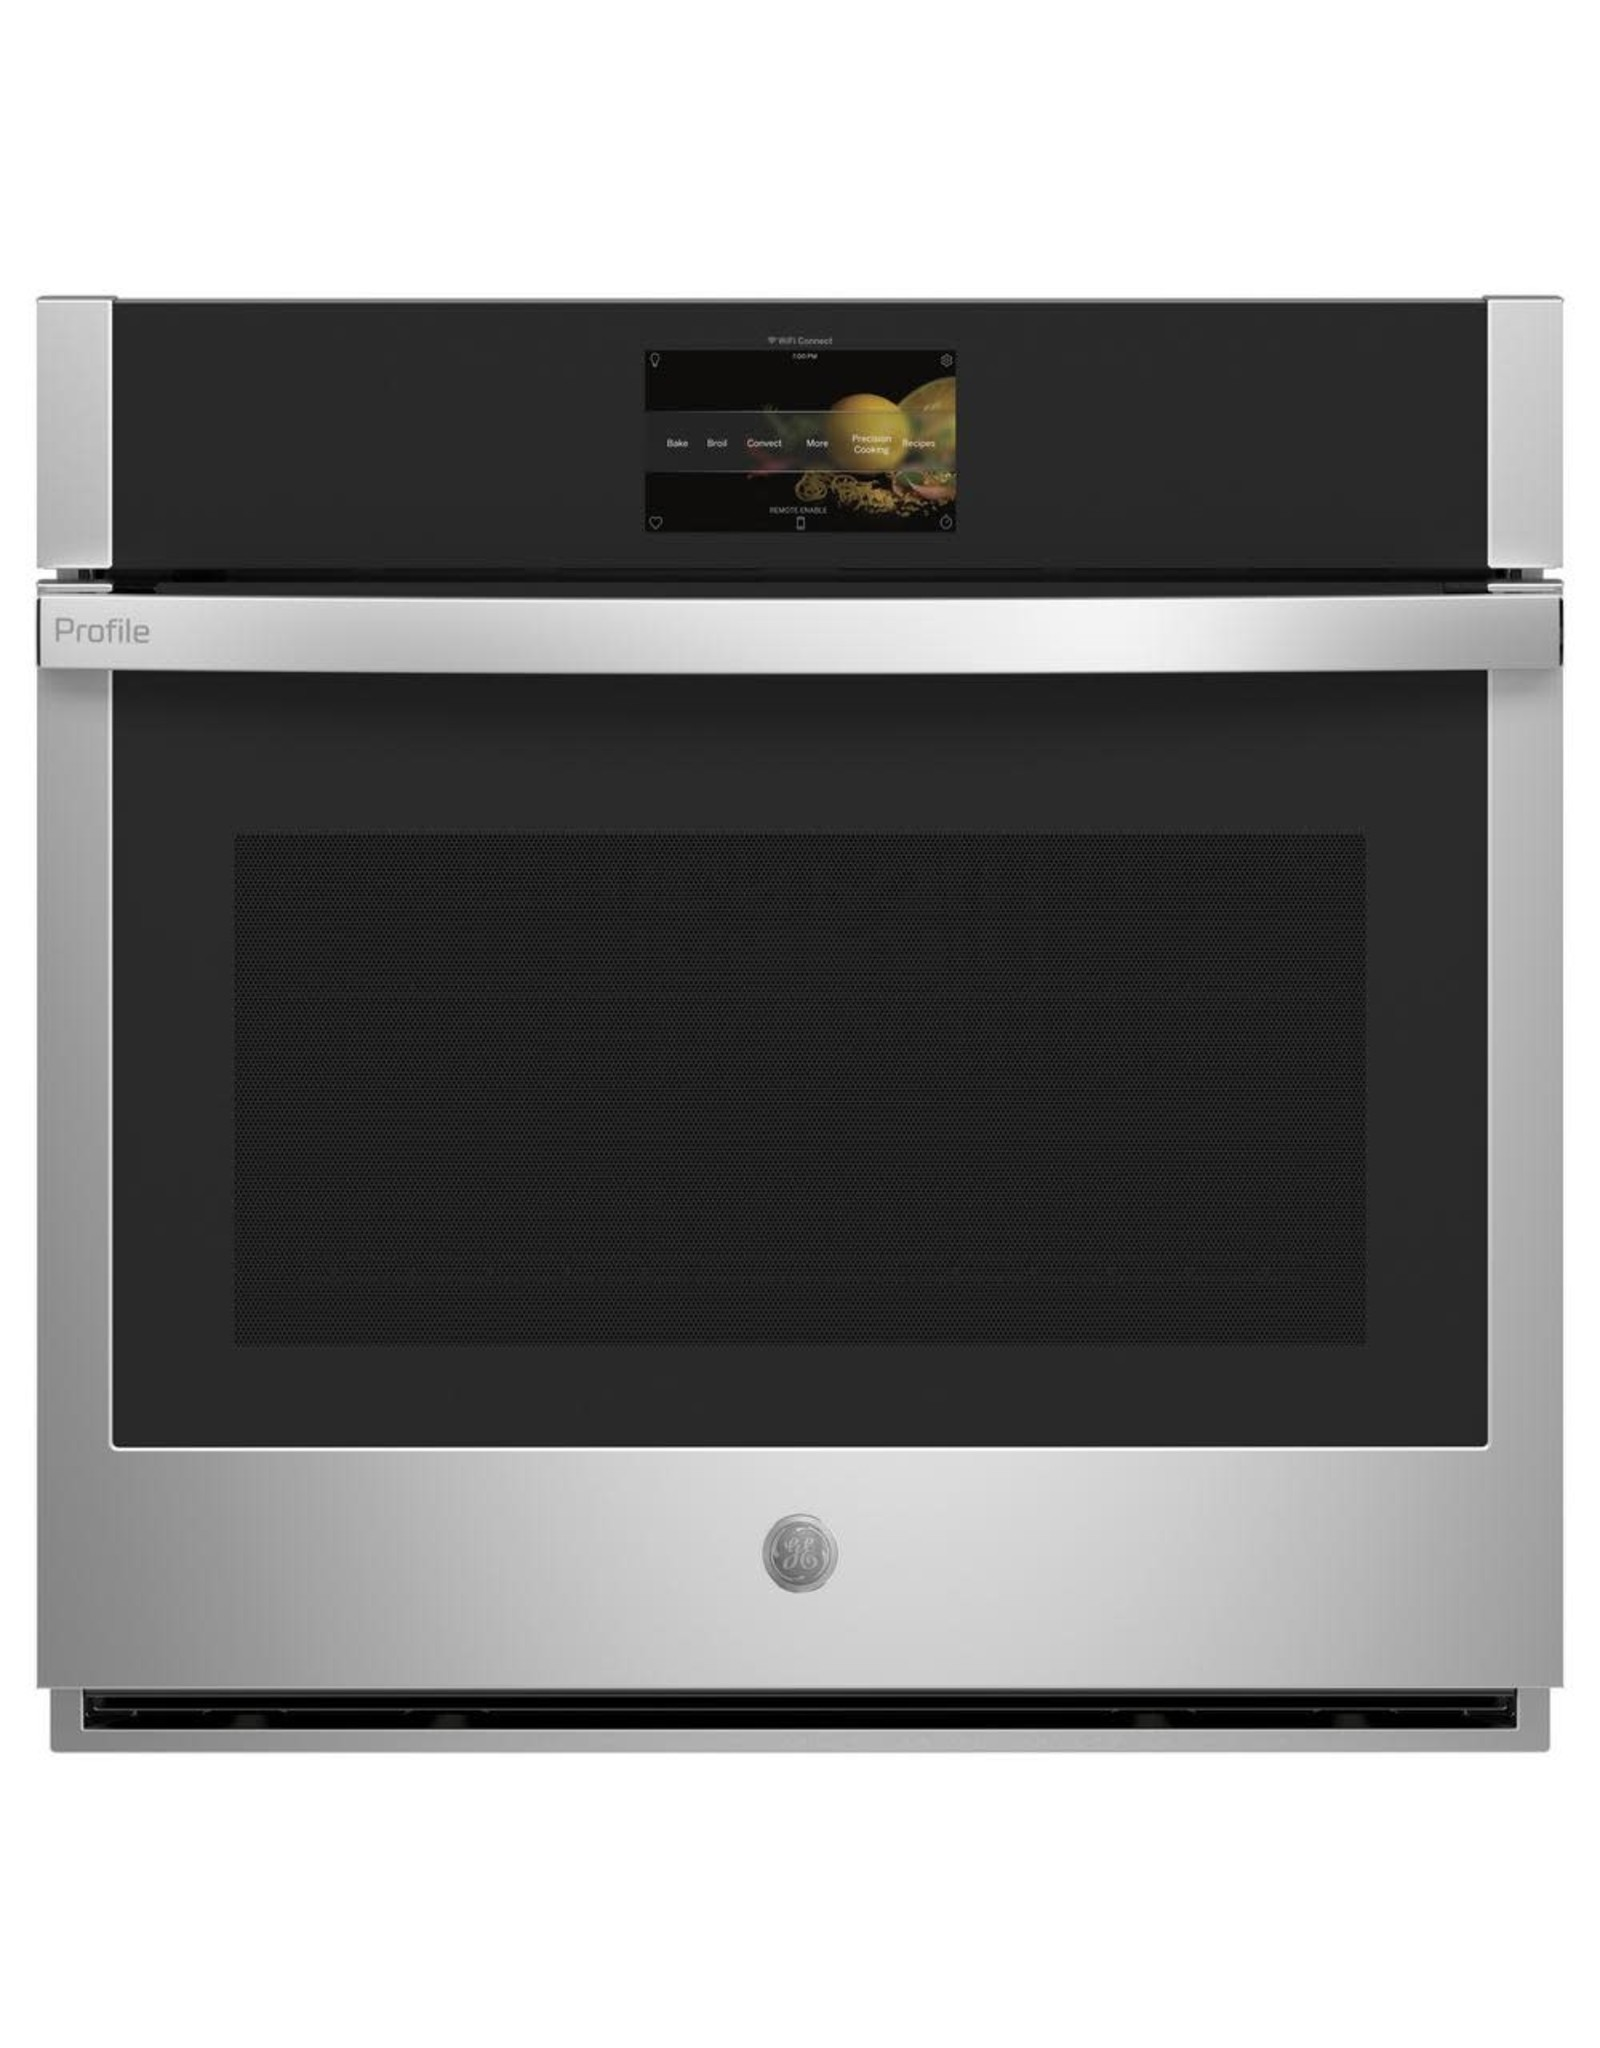 GE PTS7000SNSS Profile 30 in. Smart Single Electric Wall Oven with Convection Self-Cleaning in Stainless Steel